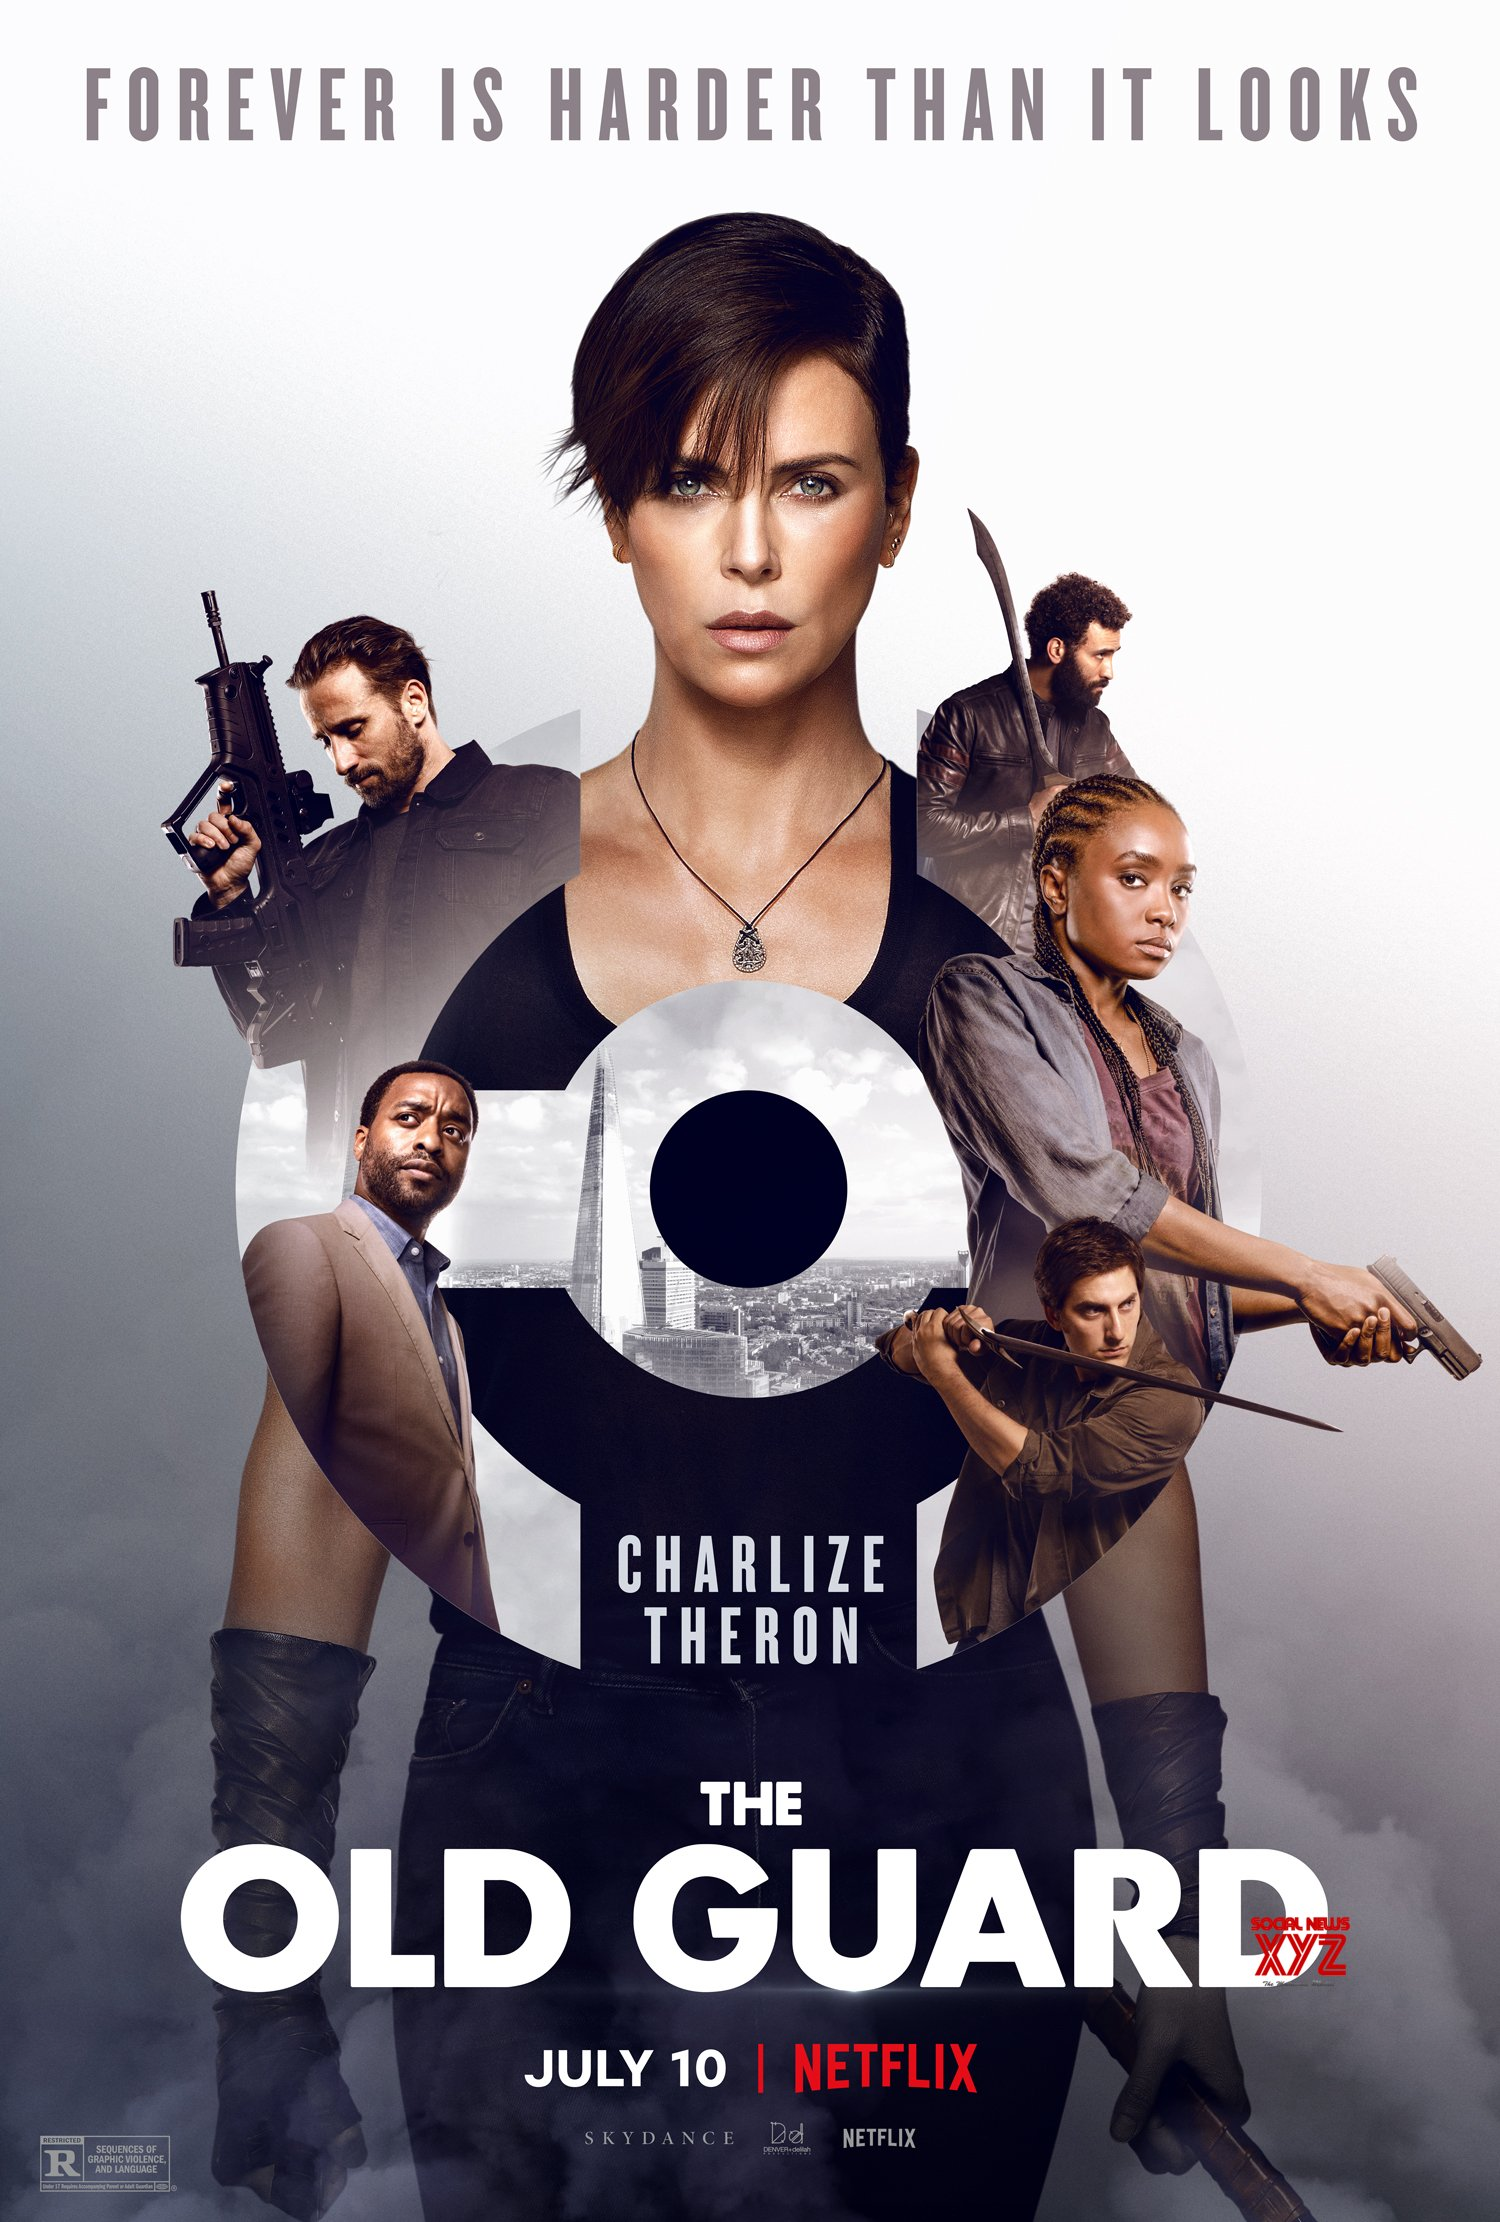 The Old Guard Movie HD Poster - Social News XYZ